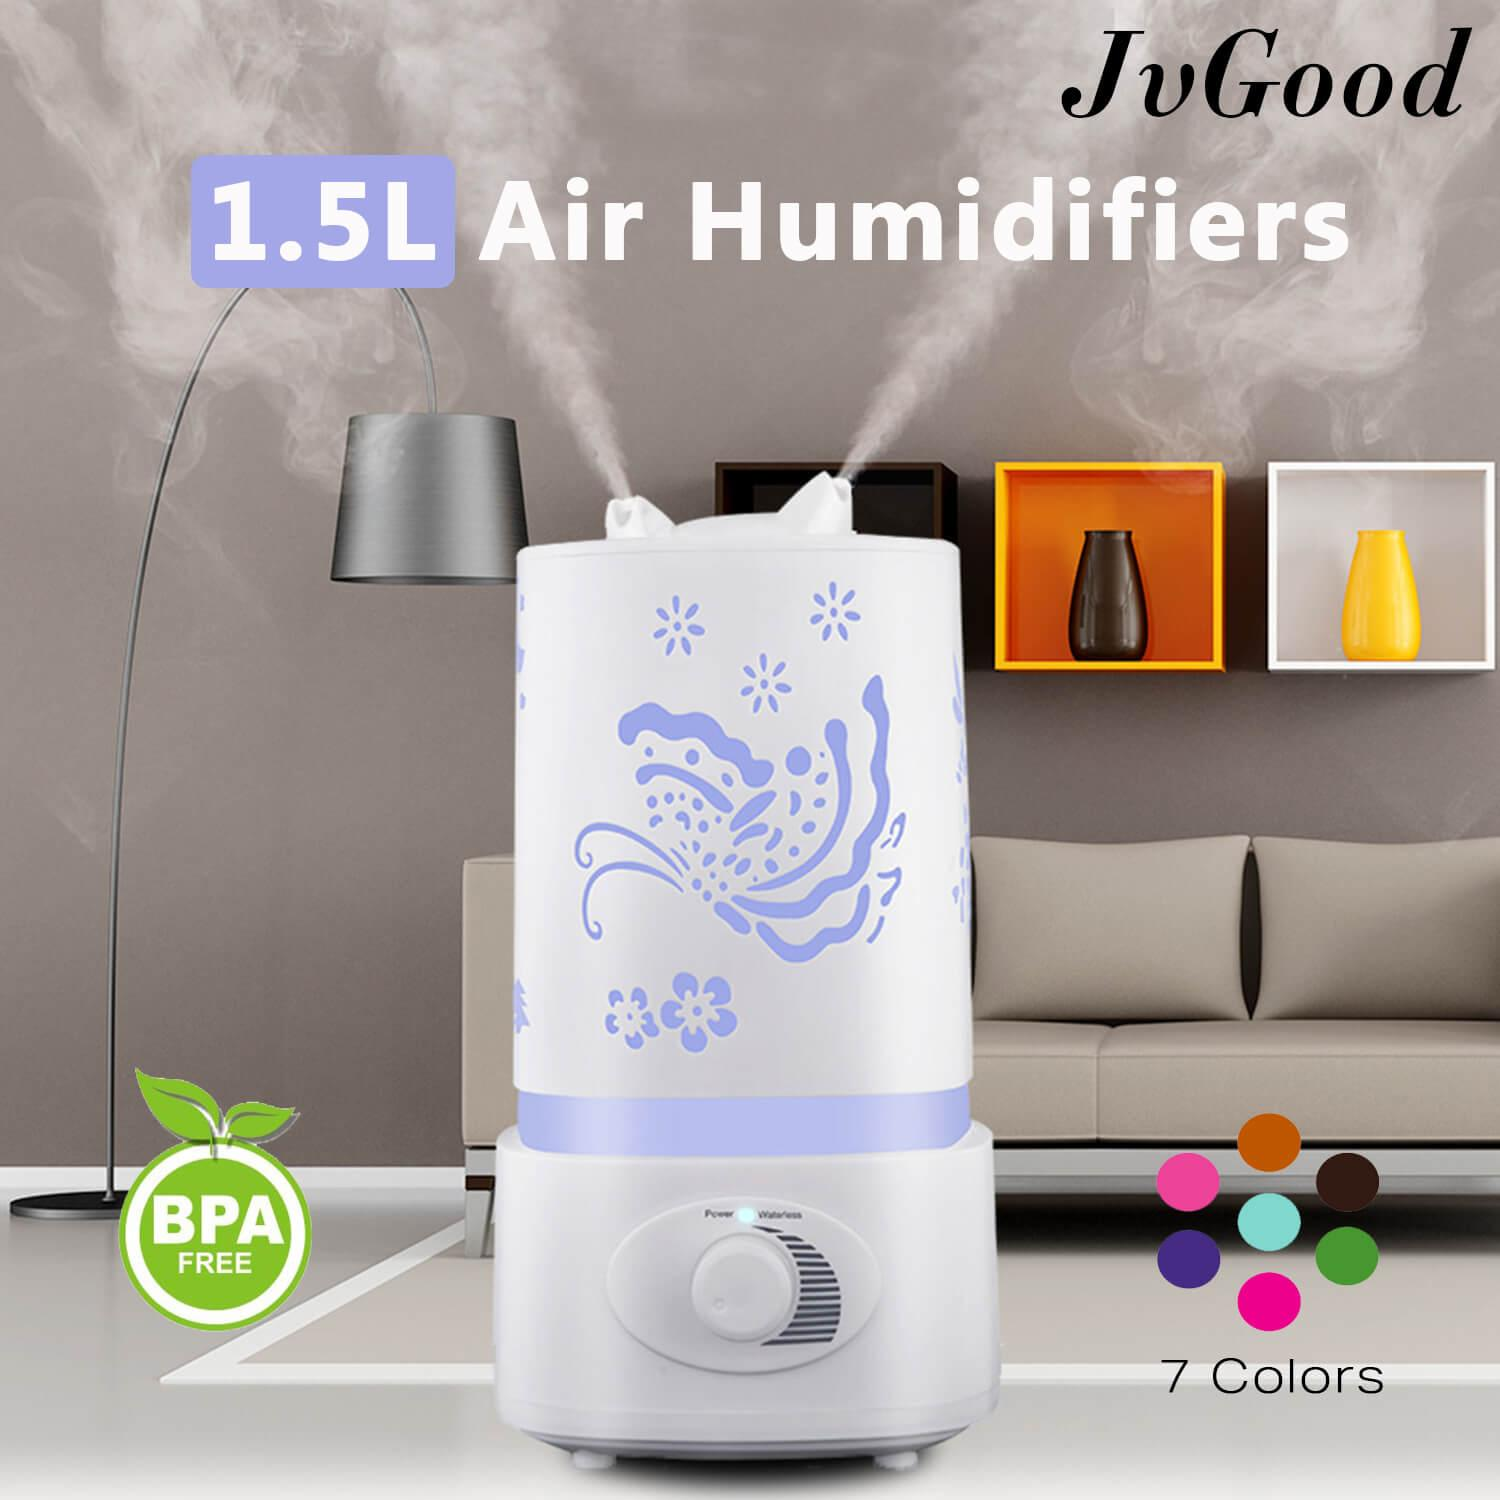 Jvgood Air Humidifiers Aroma Diffiusers Purifiers Cool Mist Humidifiers Essential Oil Aromatherapy Diffusers Machines Air Purifiers Mist Maker 1.5l With Double Nozzles By Jvgood.